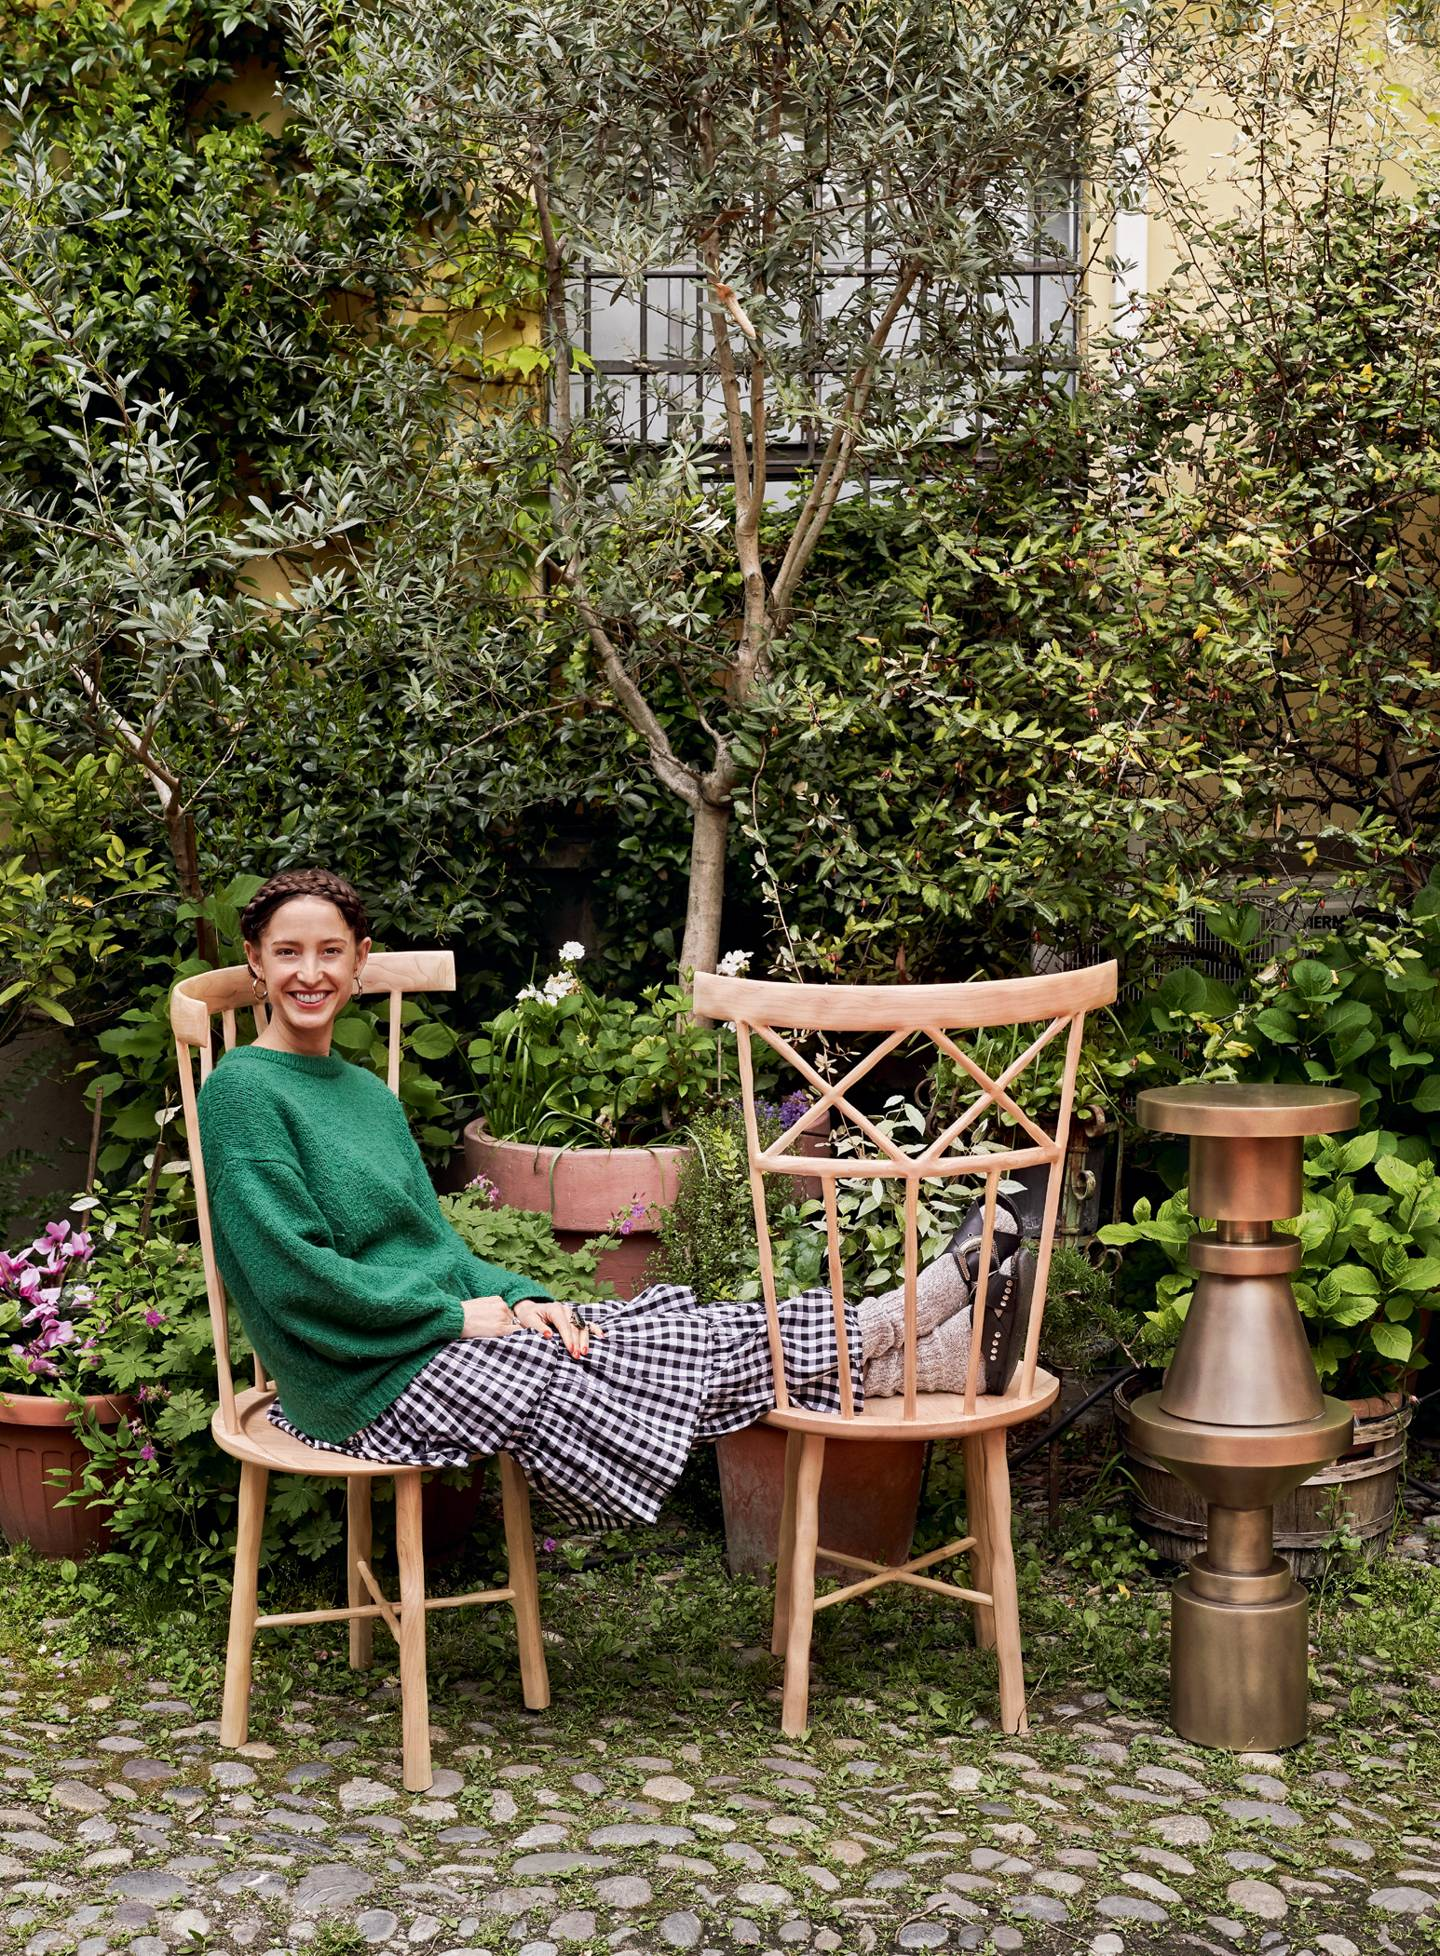 Why you need to know about the furniture designer Anna Karlin